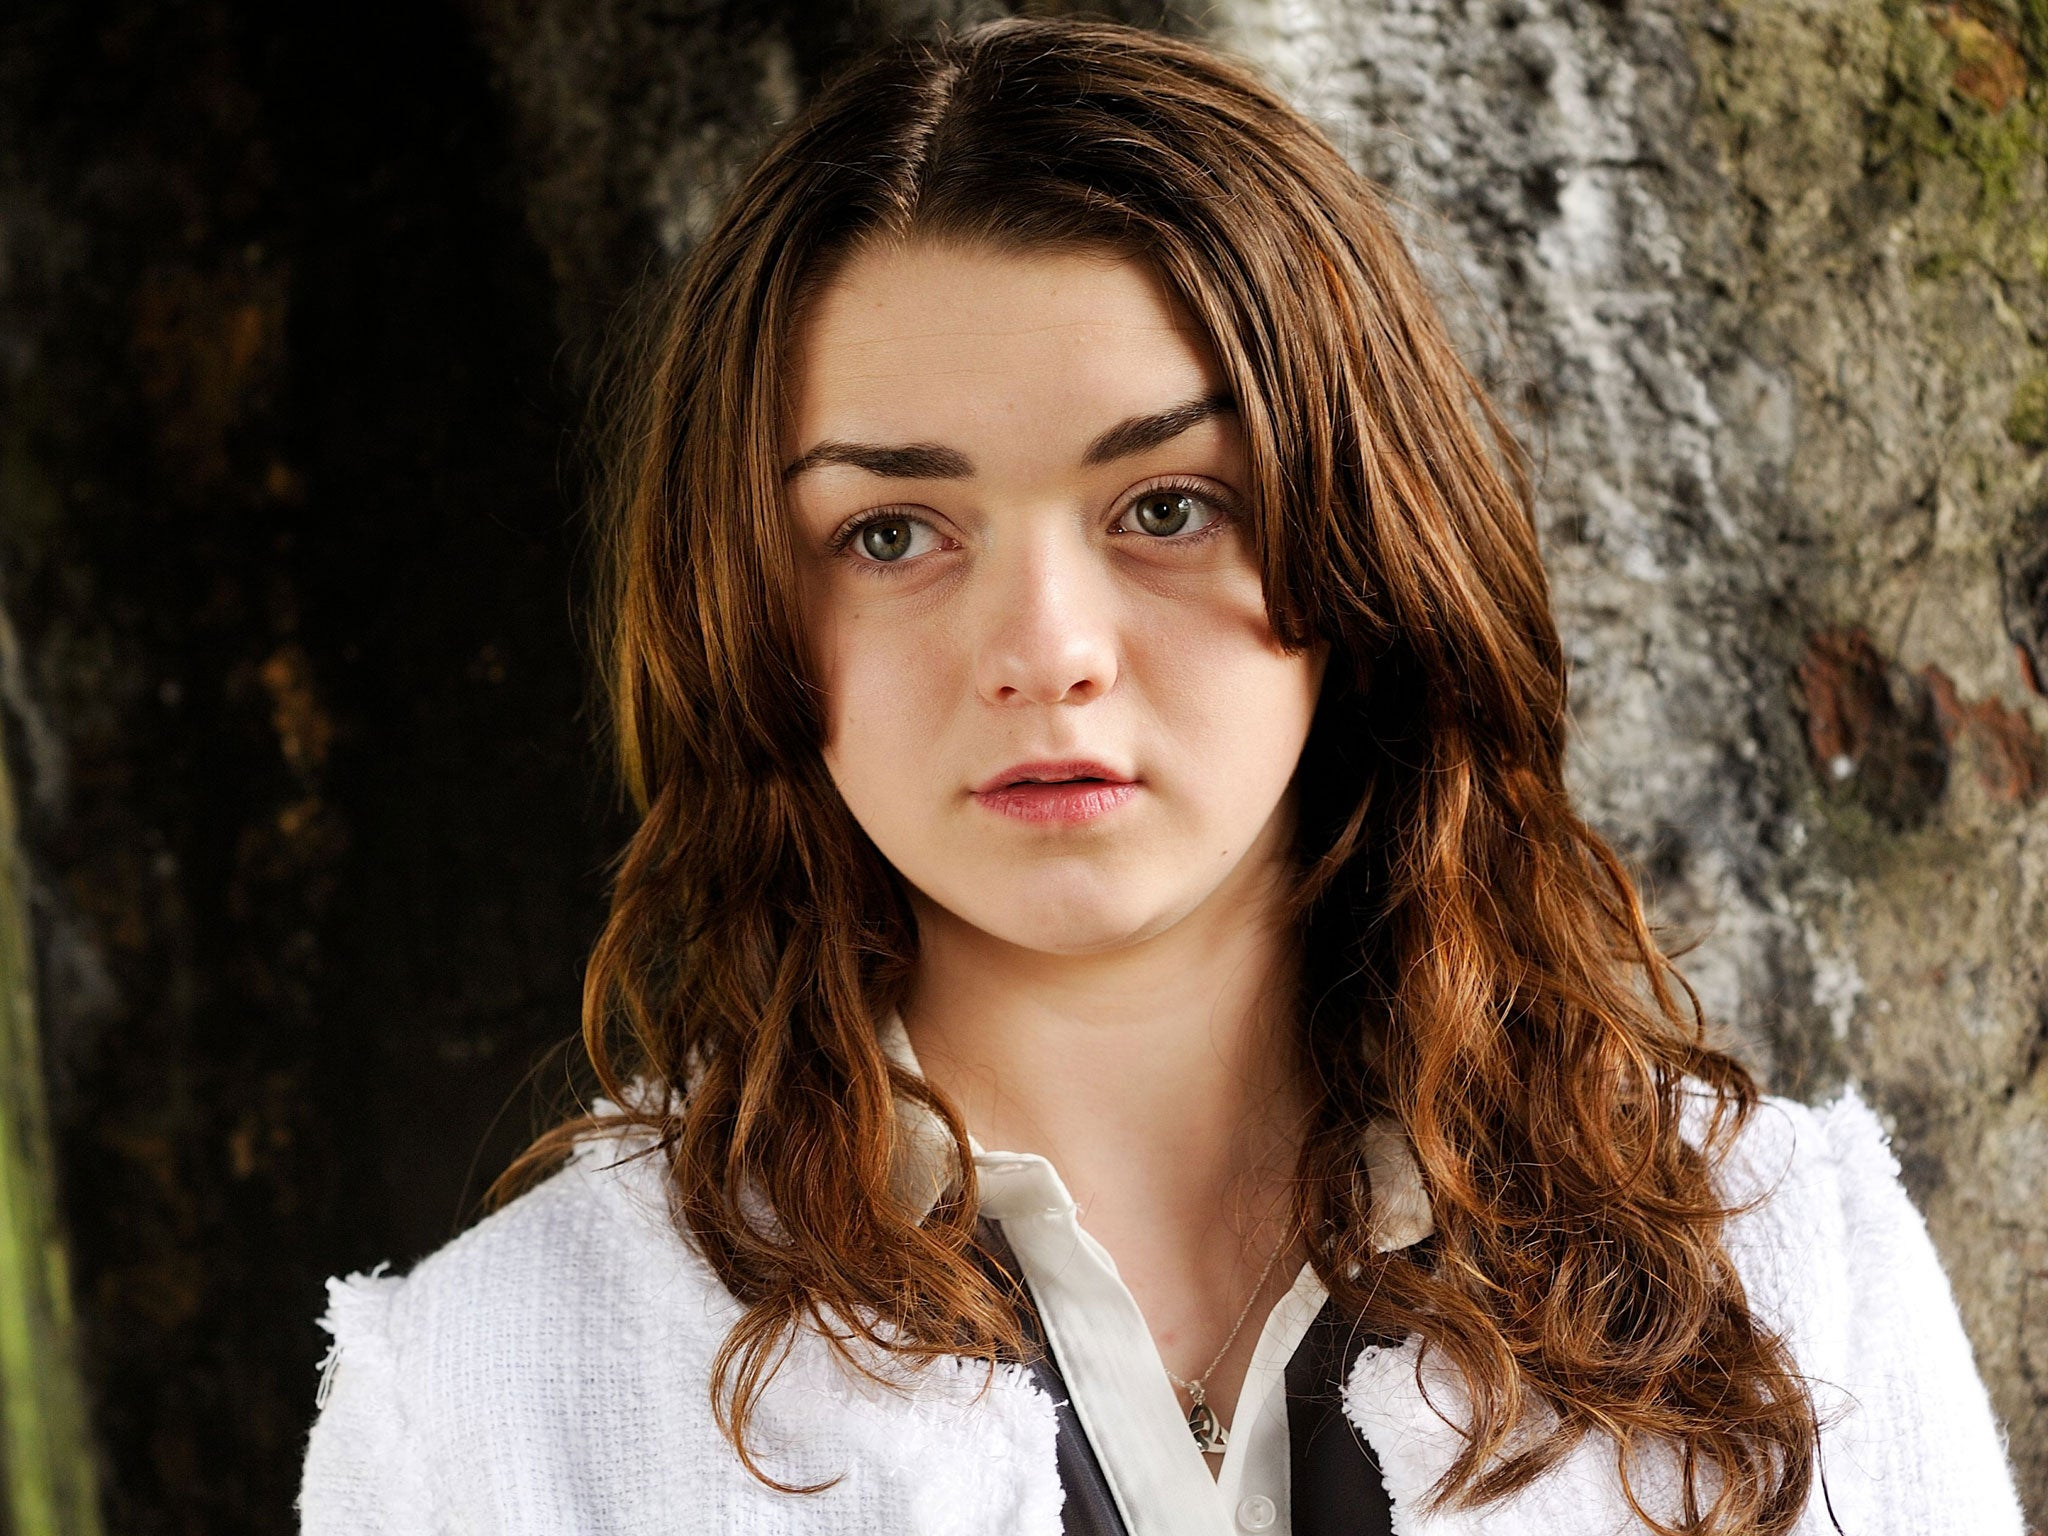 https://static.independent.co.uk/s3fs-public/thumbnails/image/2014/05/09/09/maisie-williams.jpg